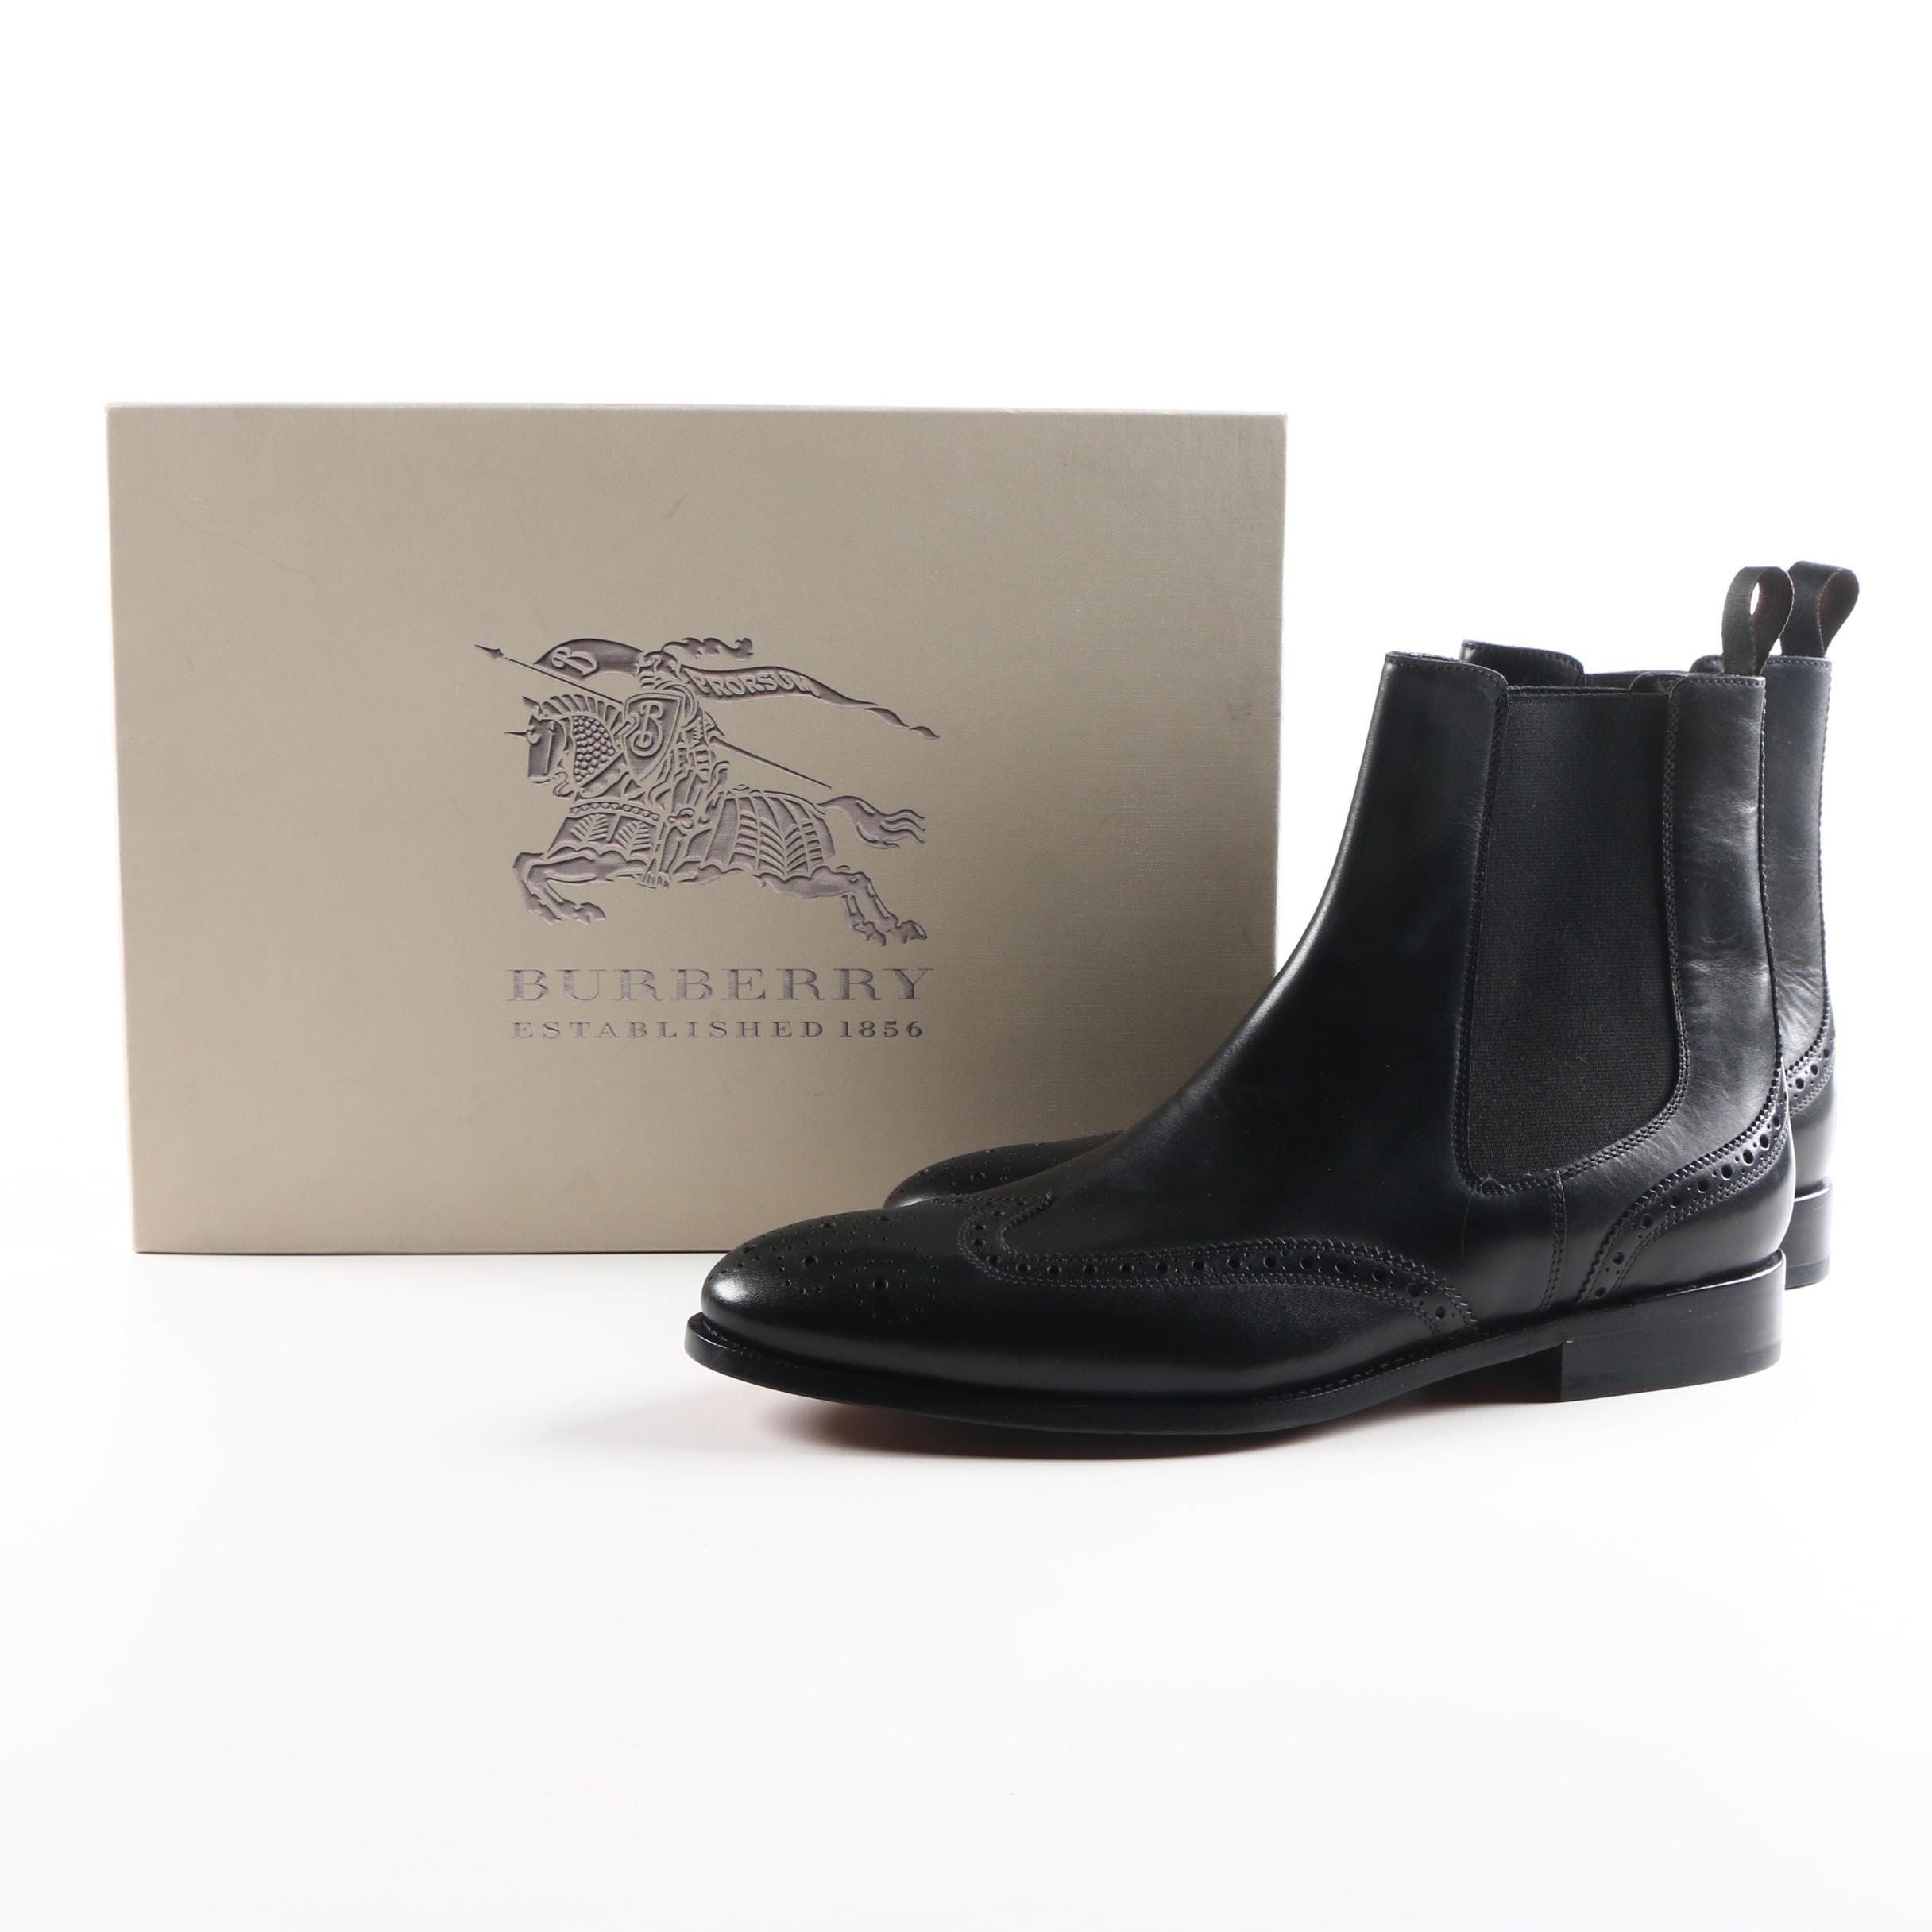 Burberry Black Leather Chelsea Brogue Boots